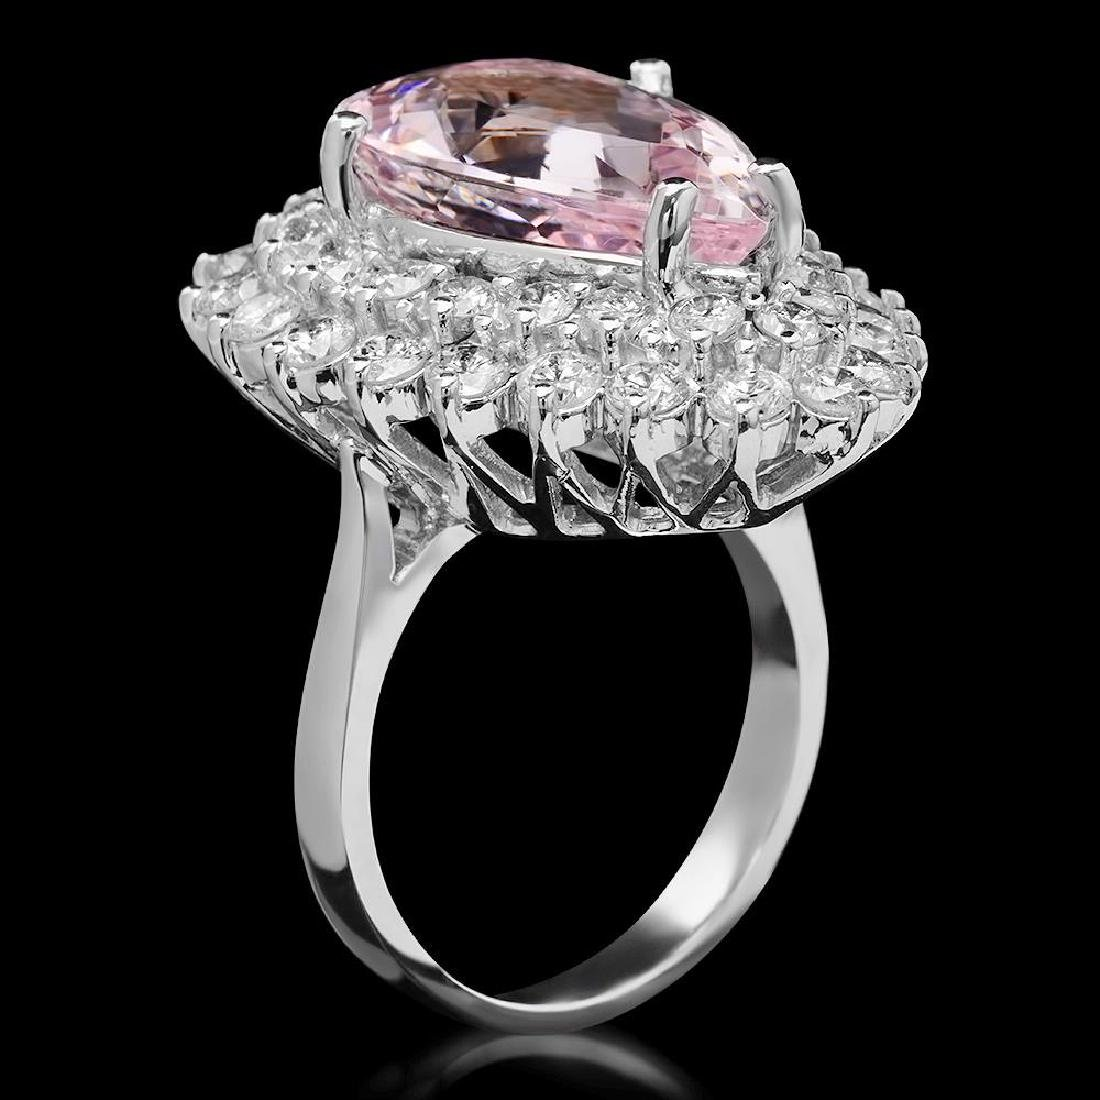 14K Gold 7.52ct Morganite 2.70ct Diamond Ring - 2